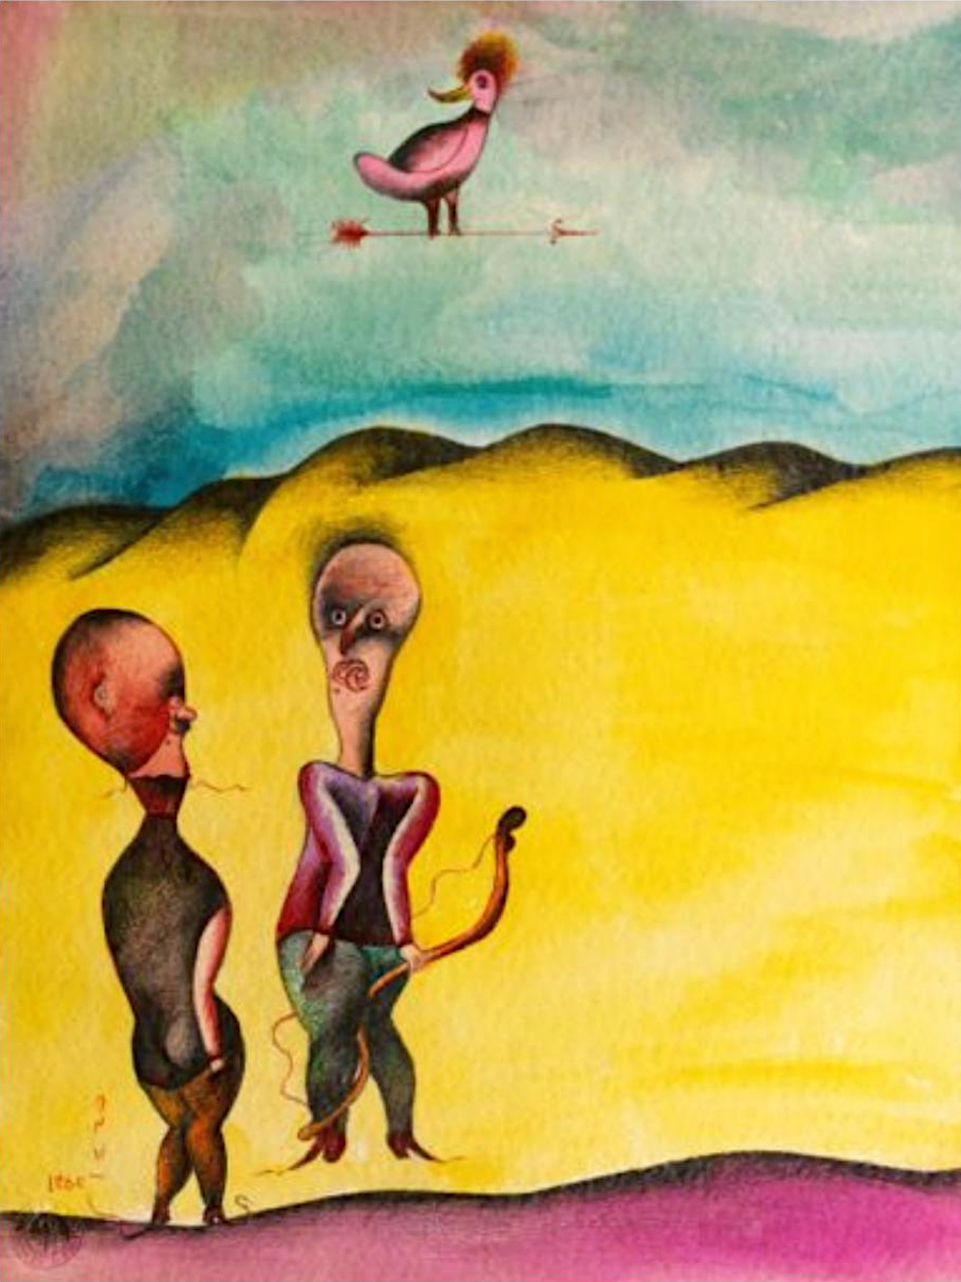 Ardeshir Mohassess, Untitled, Watercolor, pencil and ink on paper, 1974